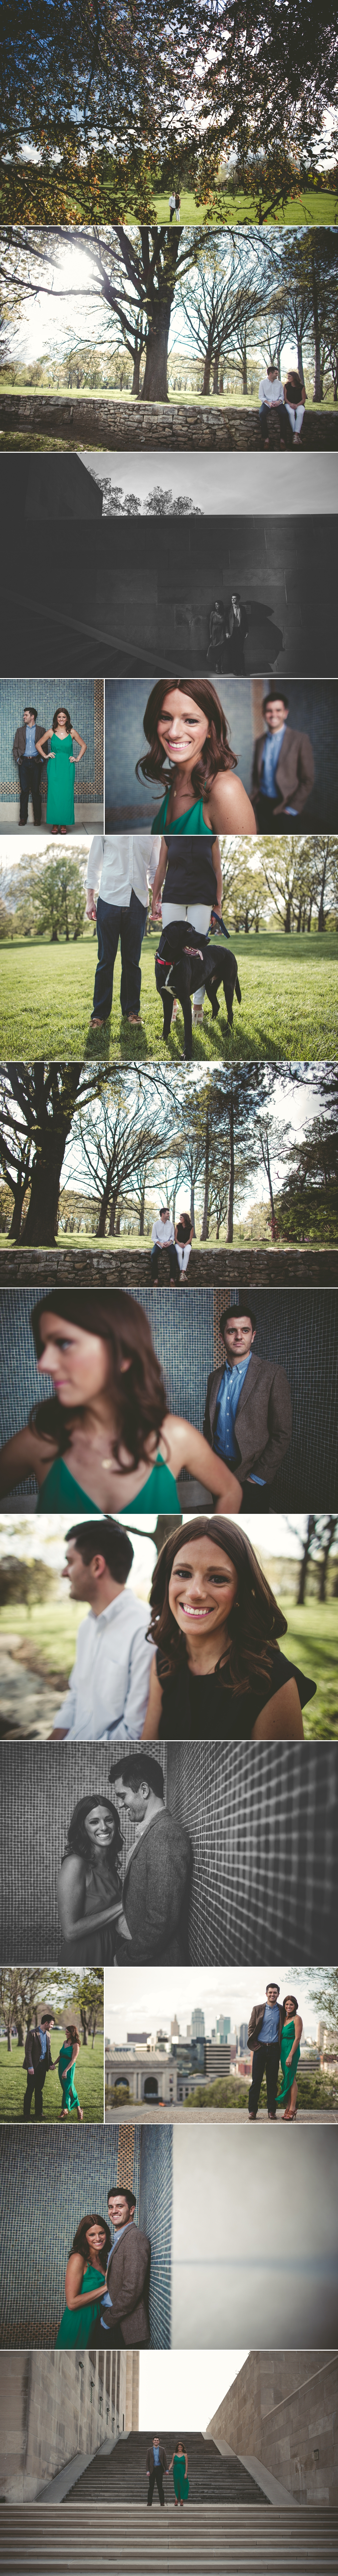 best_kc_wedding_photographer_kansas_city_engagement_photos_session_loose_park_liberty_memorial_creative_photography_dog_